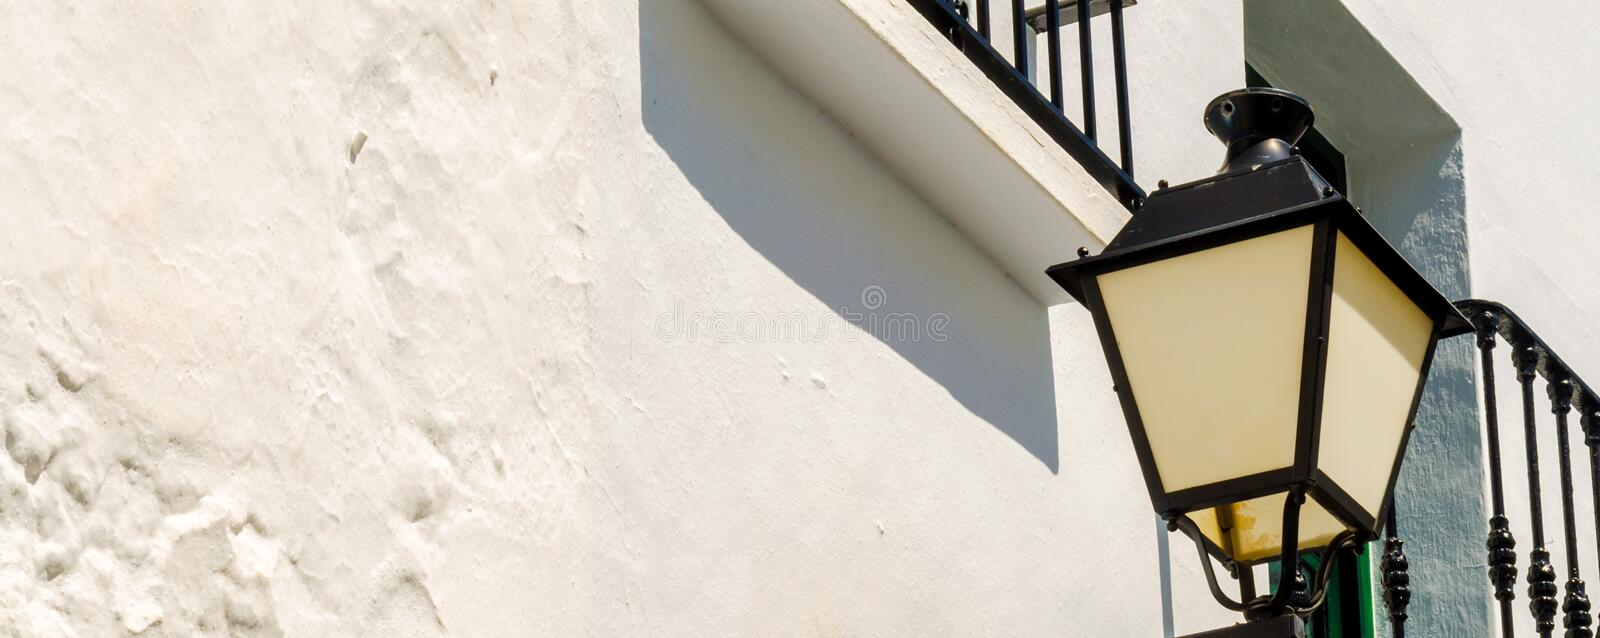 Old stylish street lamp illuminating the Spanish street, a characteristic element of traditional street architecture. Decor stock images